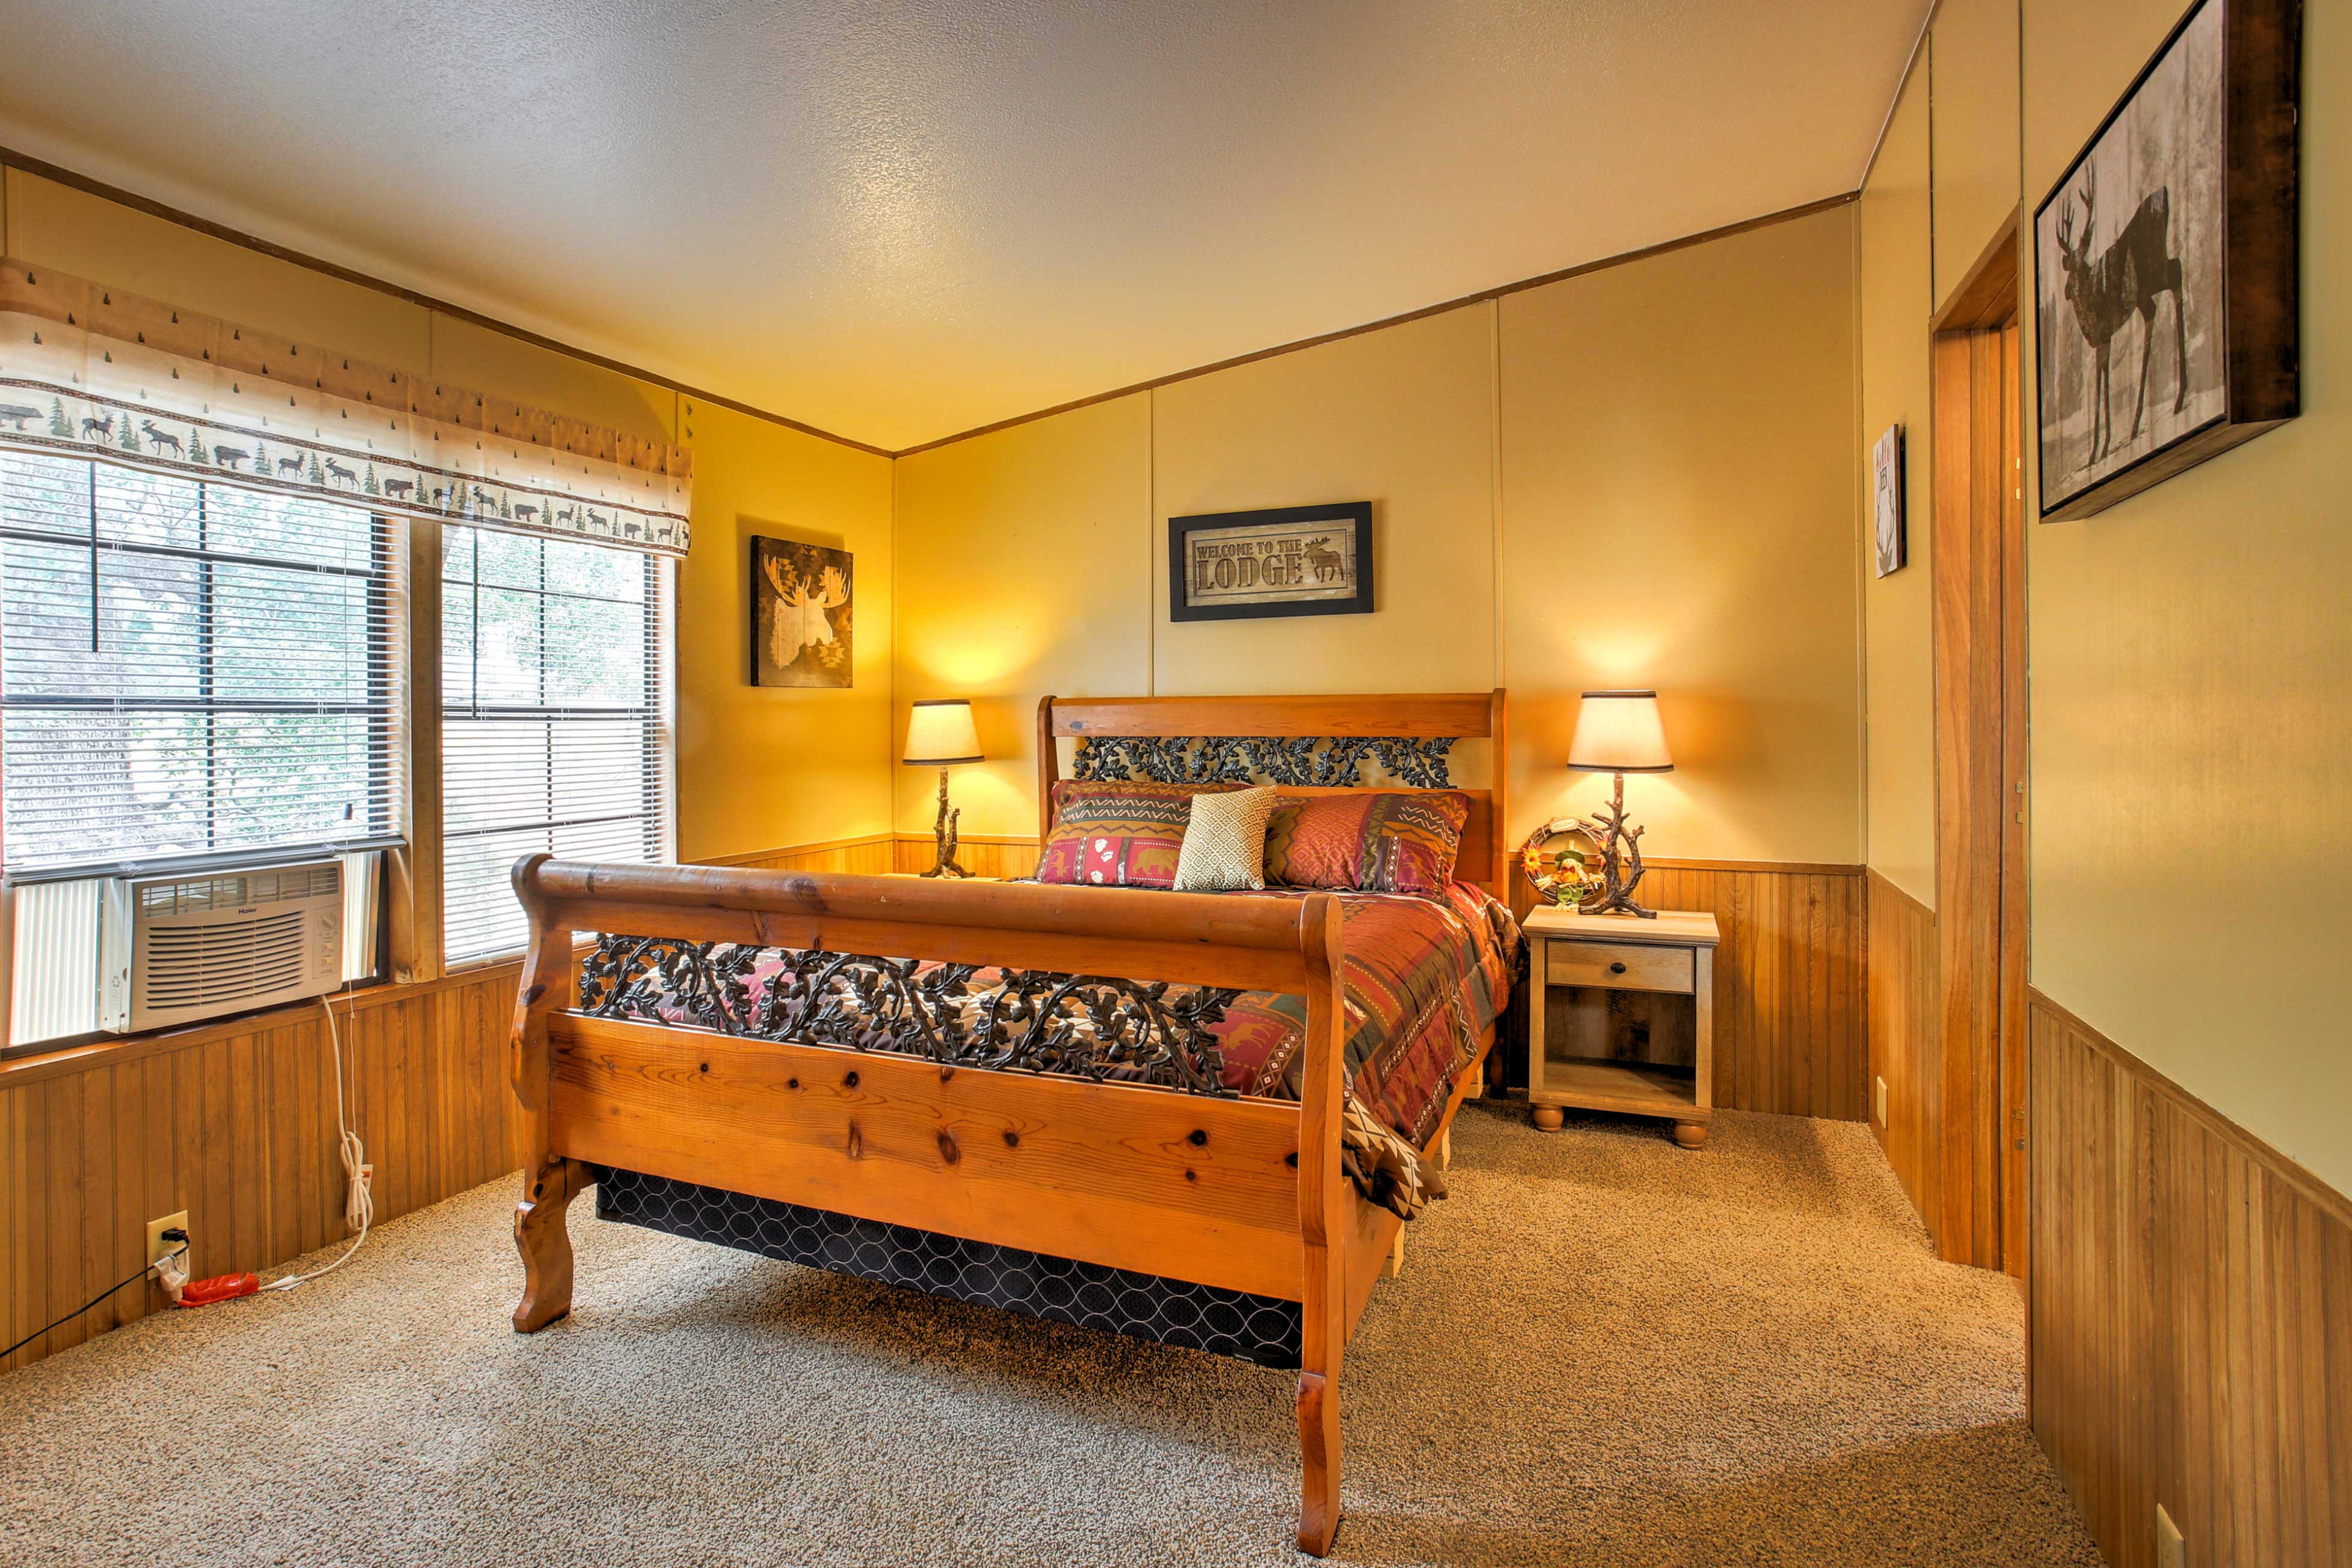 After a full day of outdoor activities, you're sure to fall fast asleep on one of the super comfortable beds.